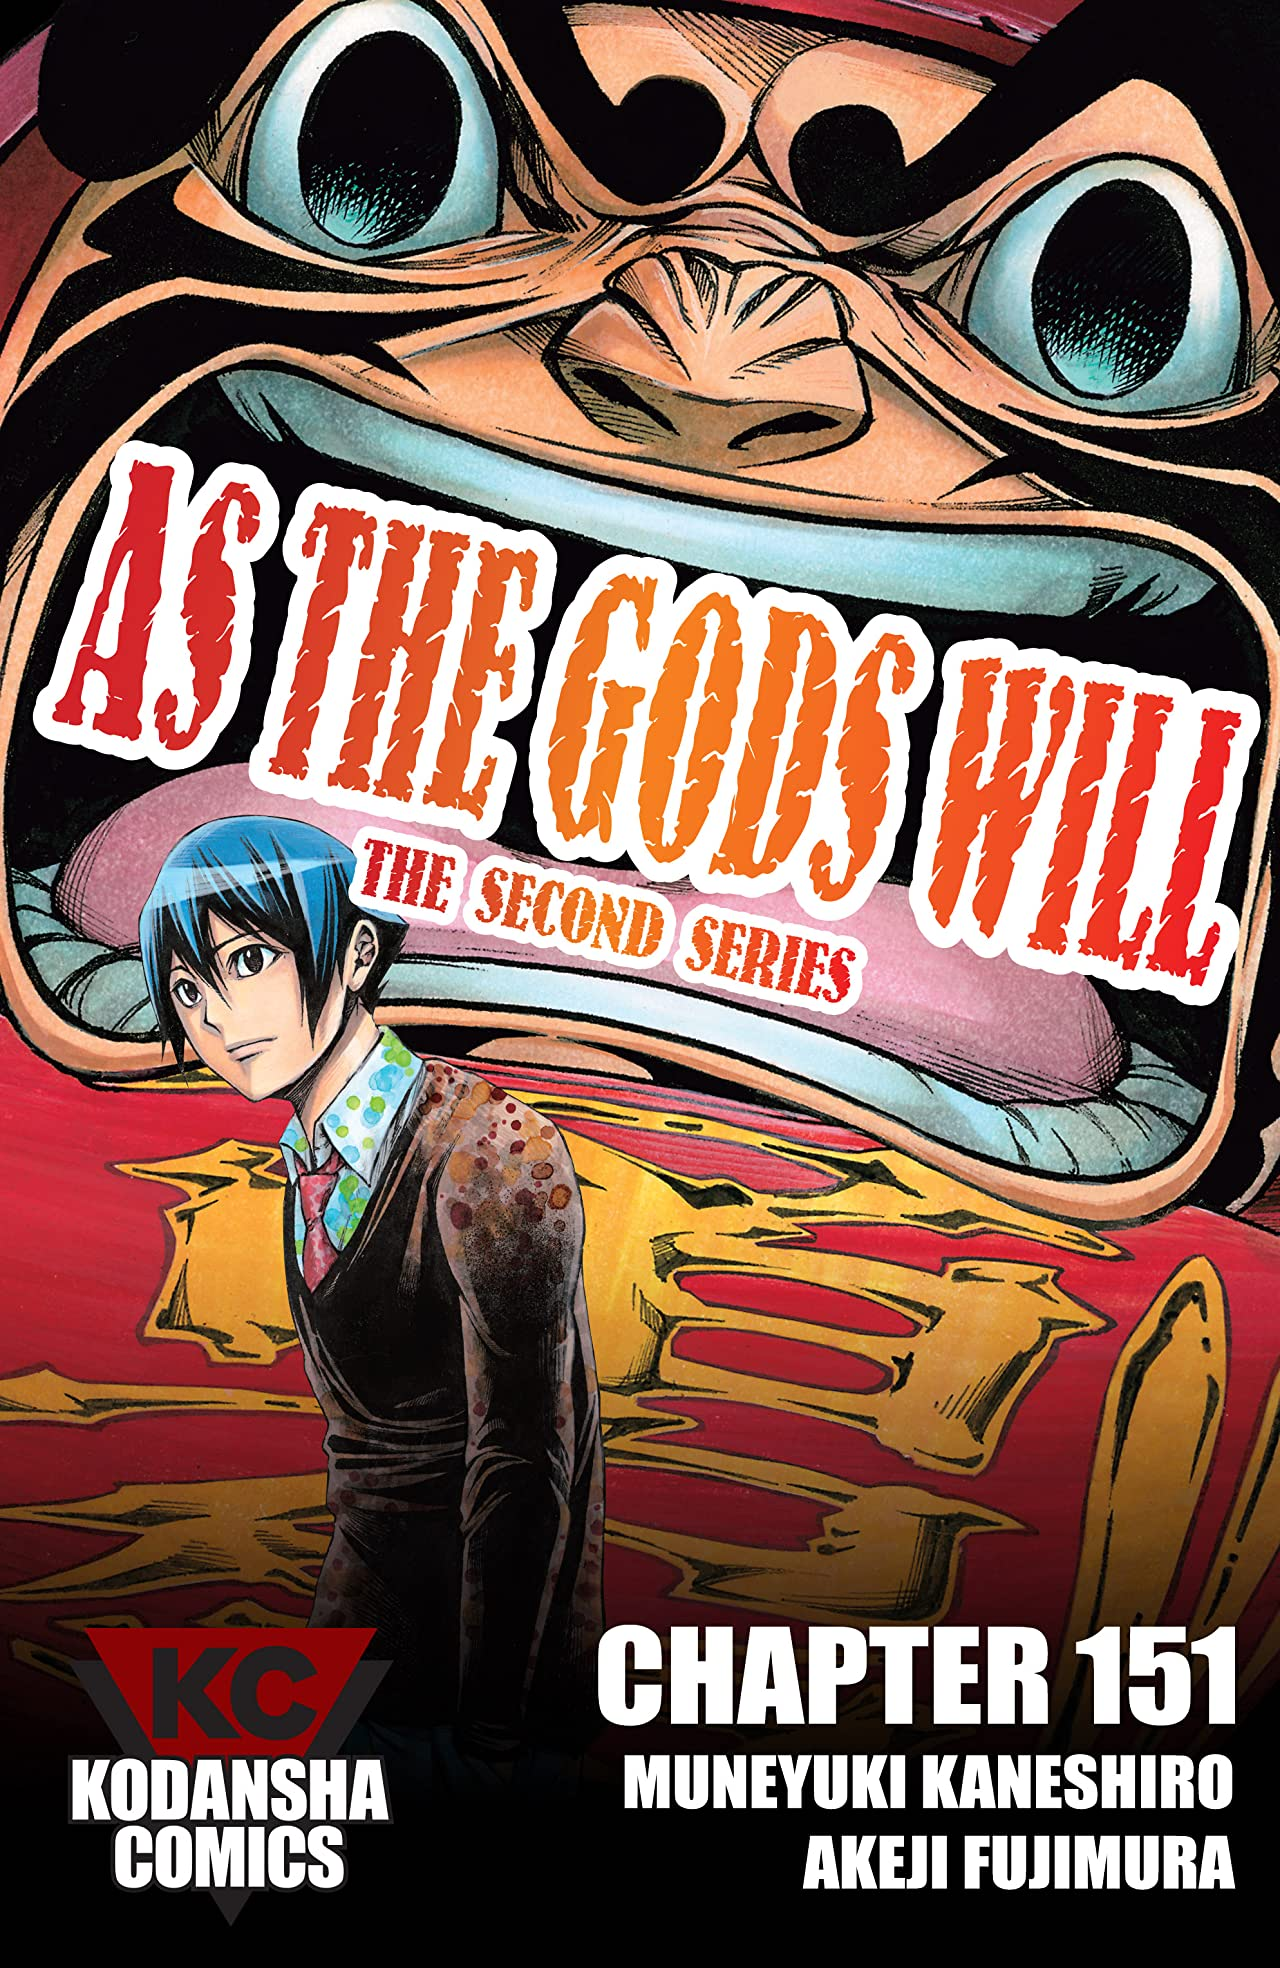 As The Gods Will: The Second Series #151